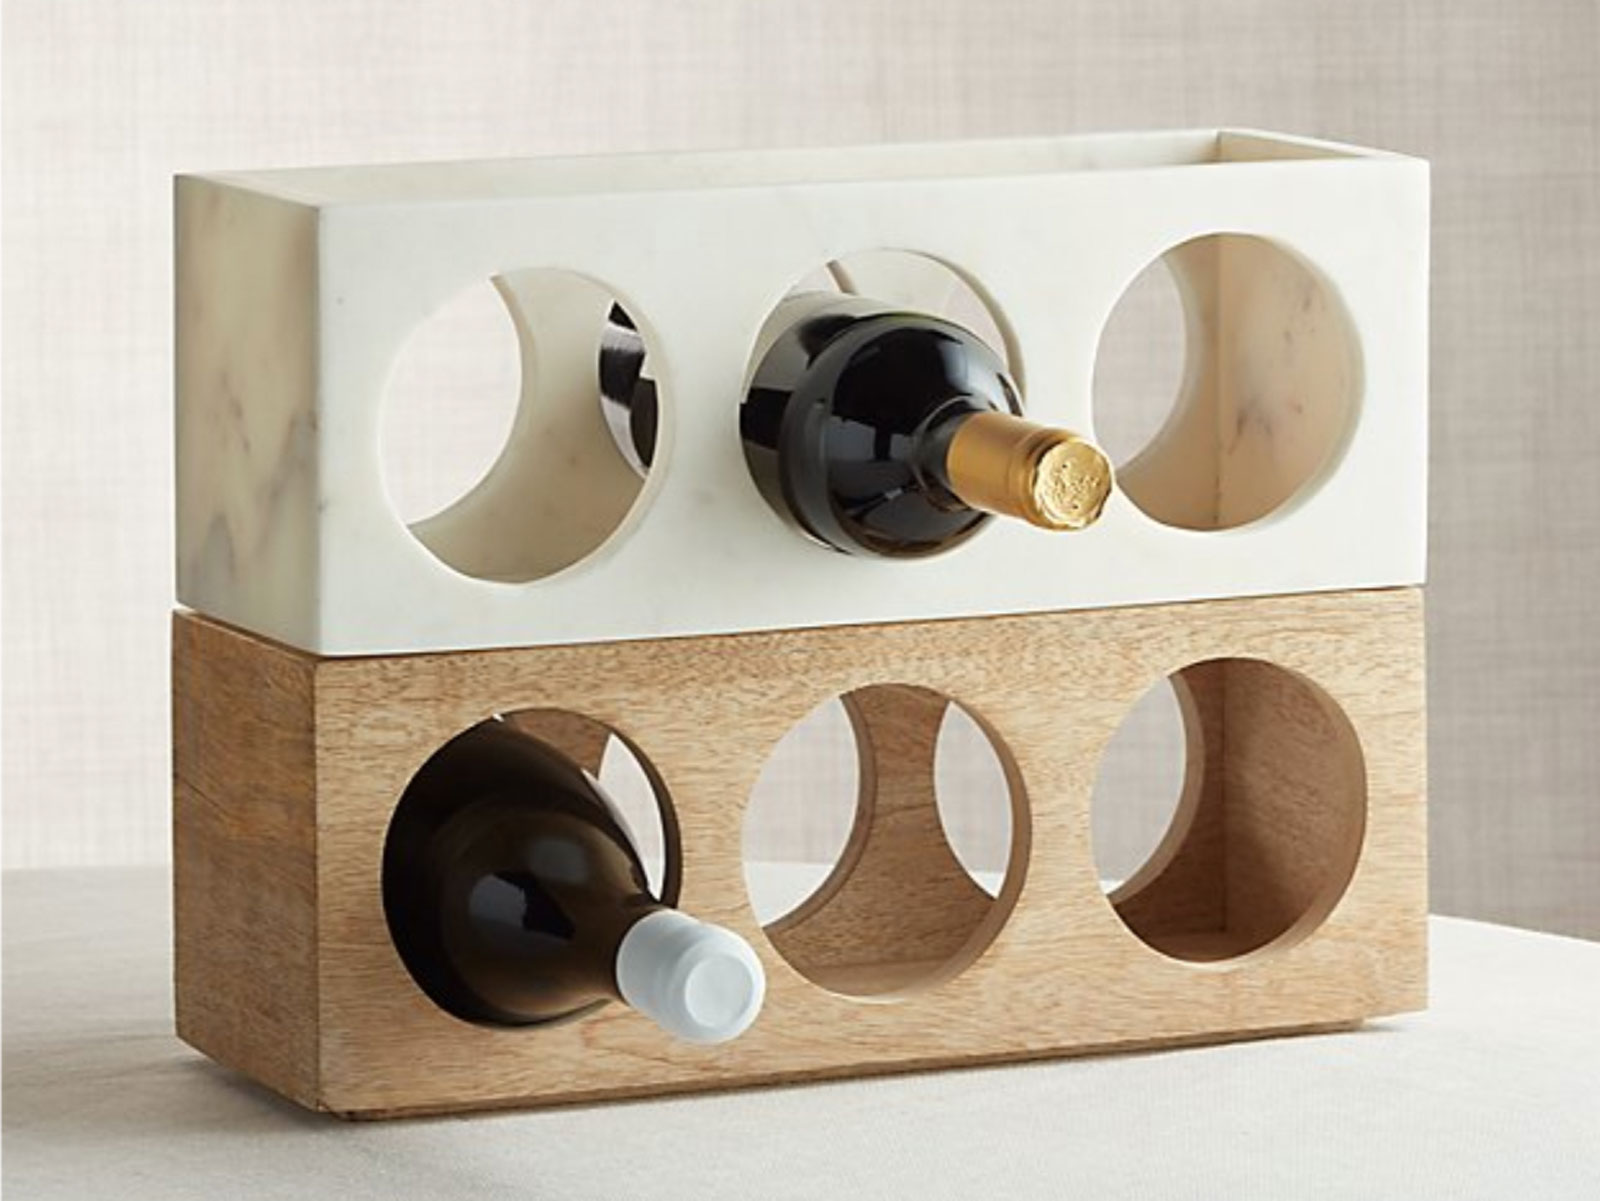 Crate & Barrel wood wine rack